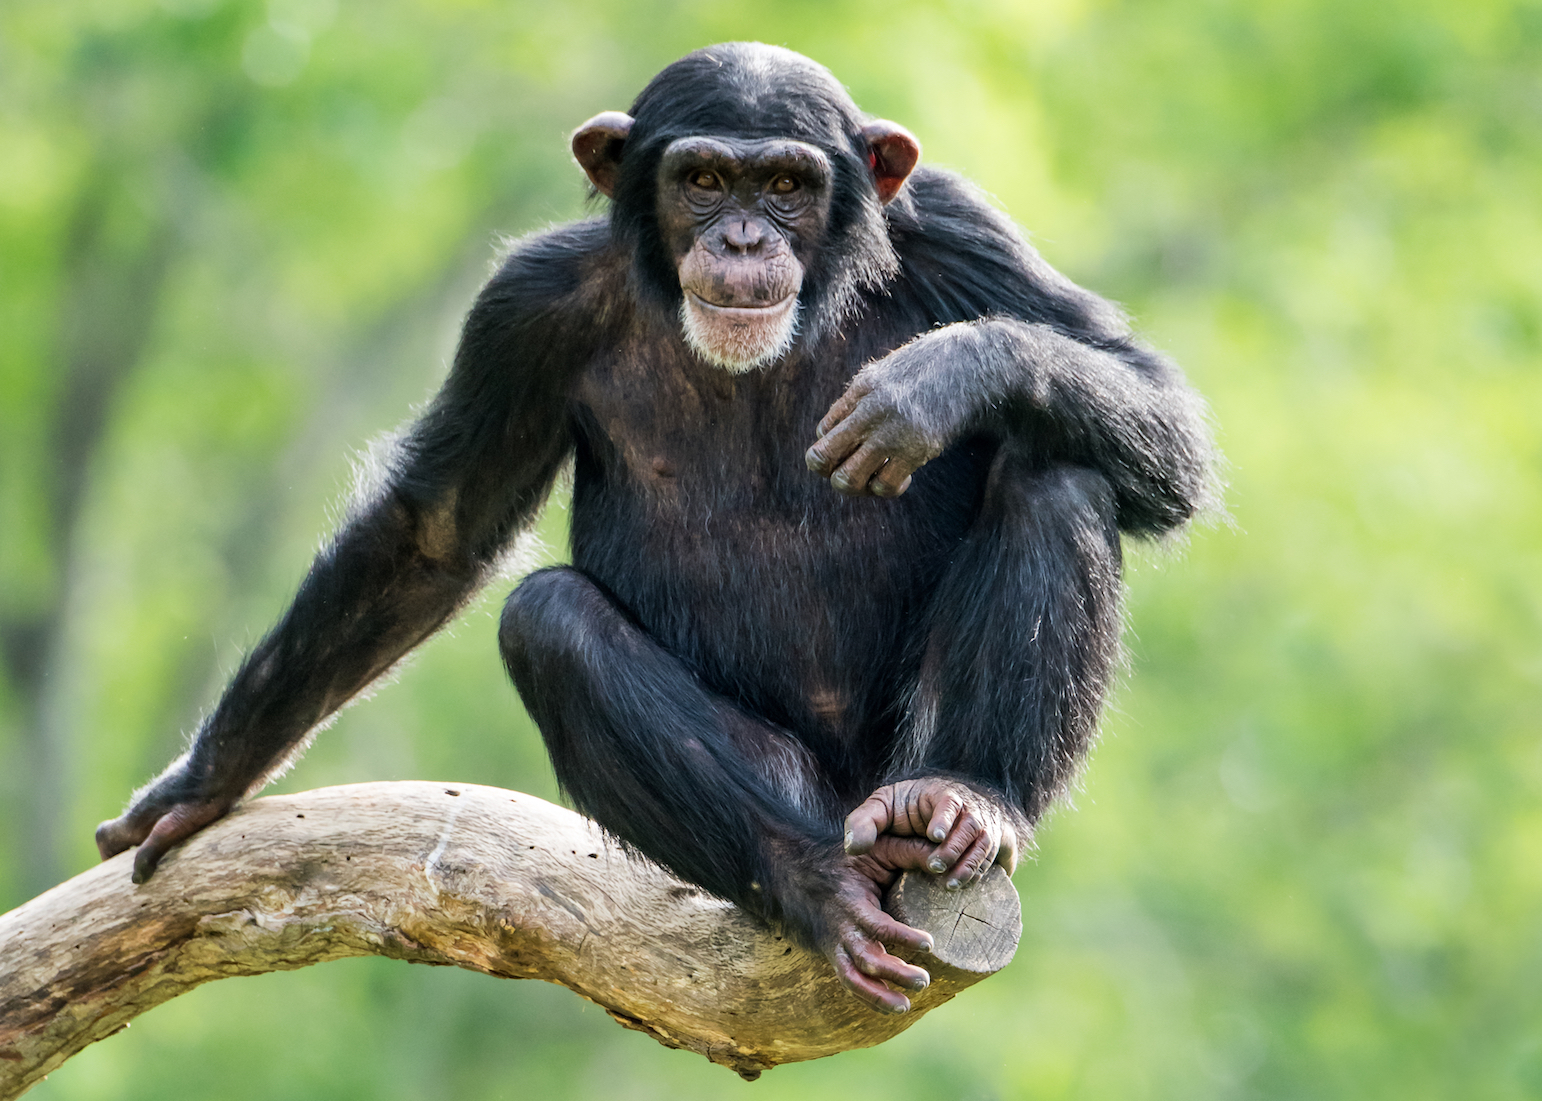 A chimpanzee's ability to control urges and delay gratification corresponds with the individual's level of general intelligence.